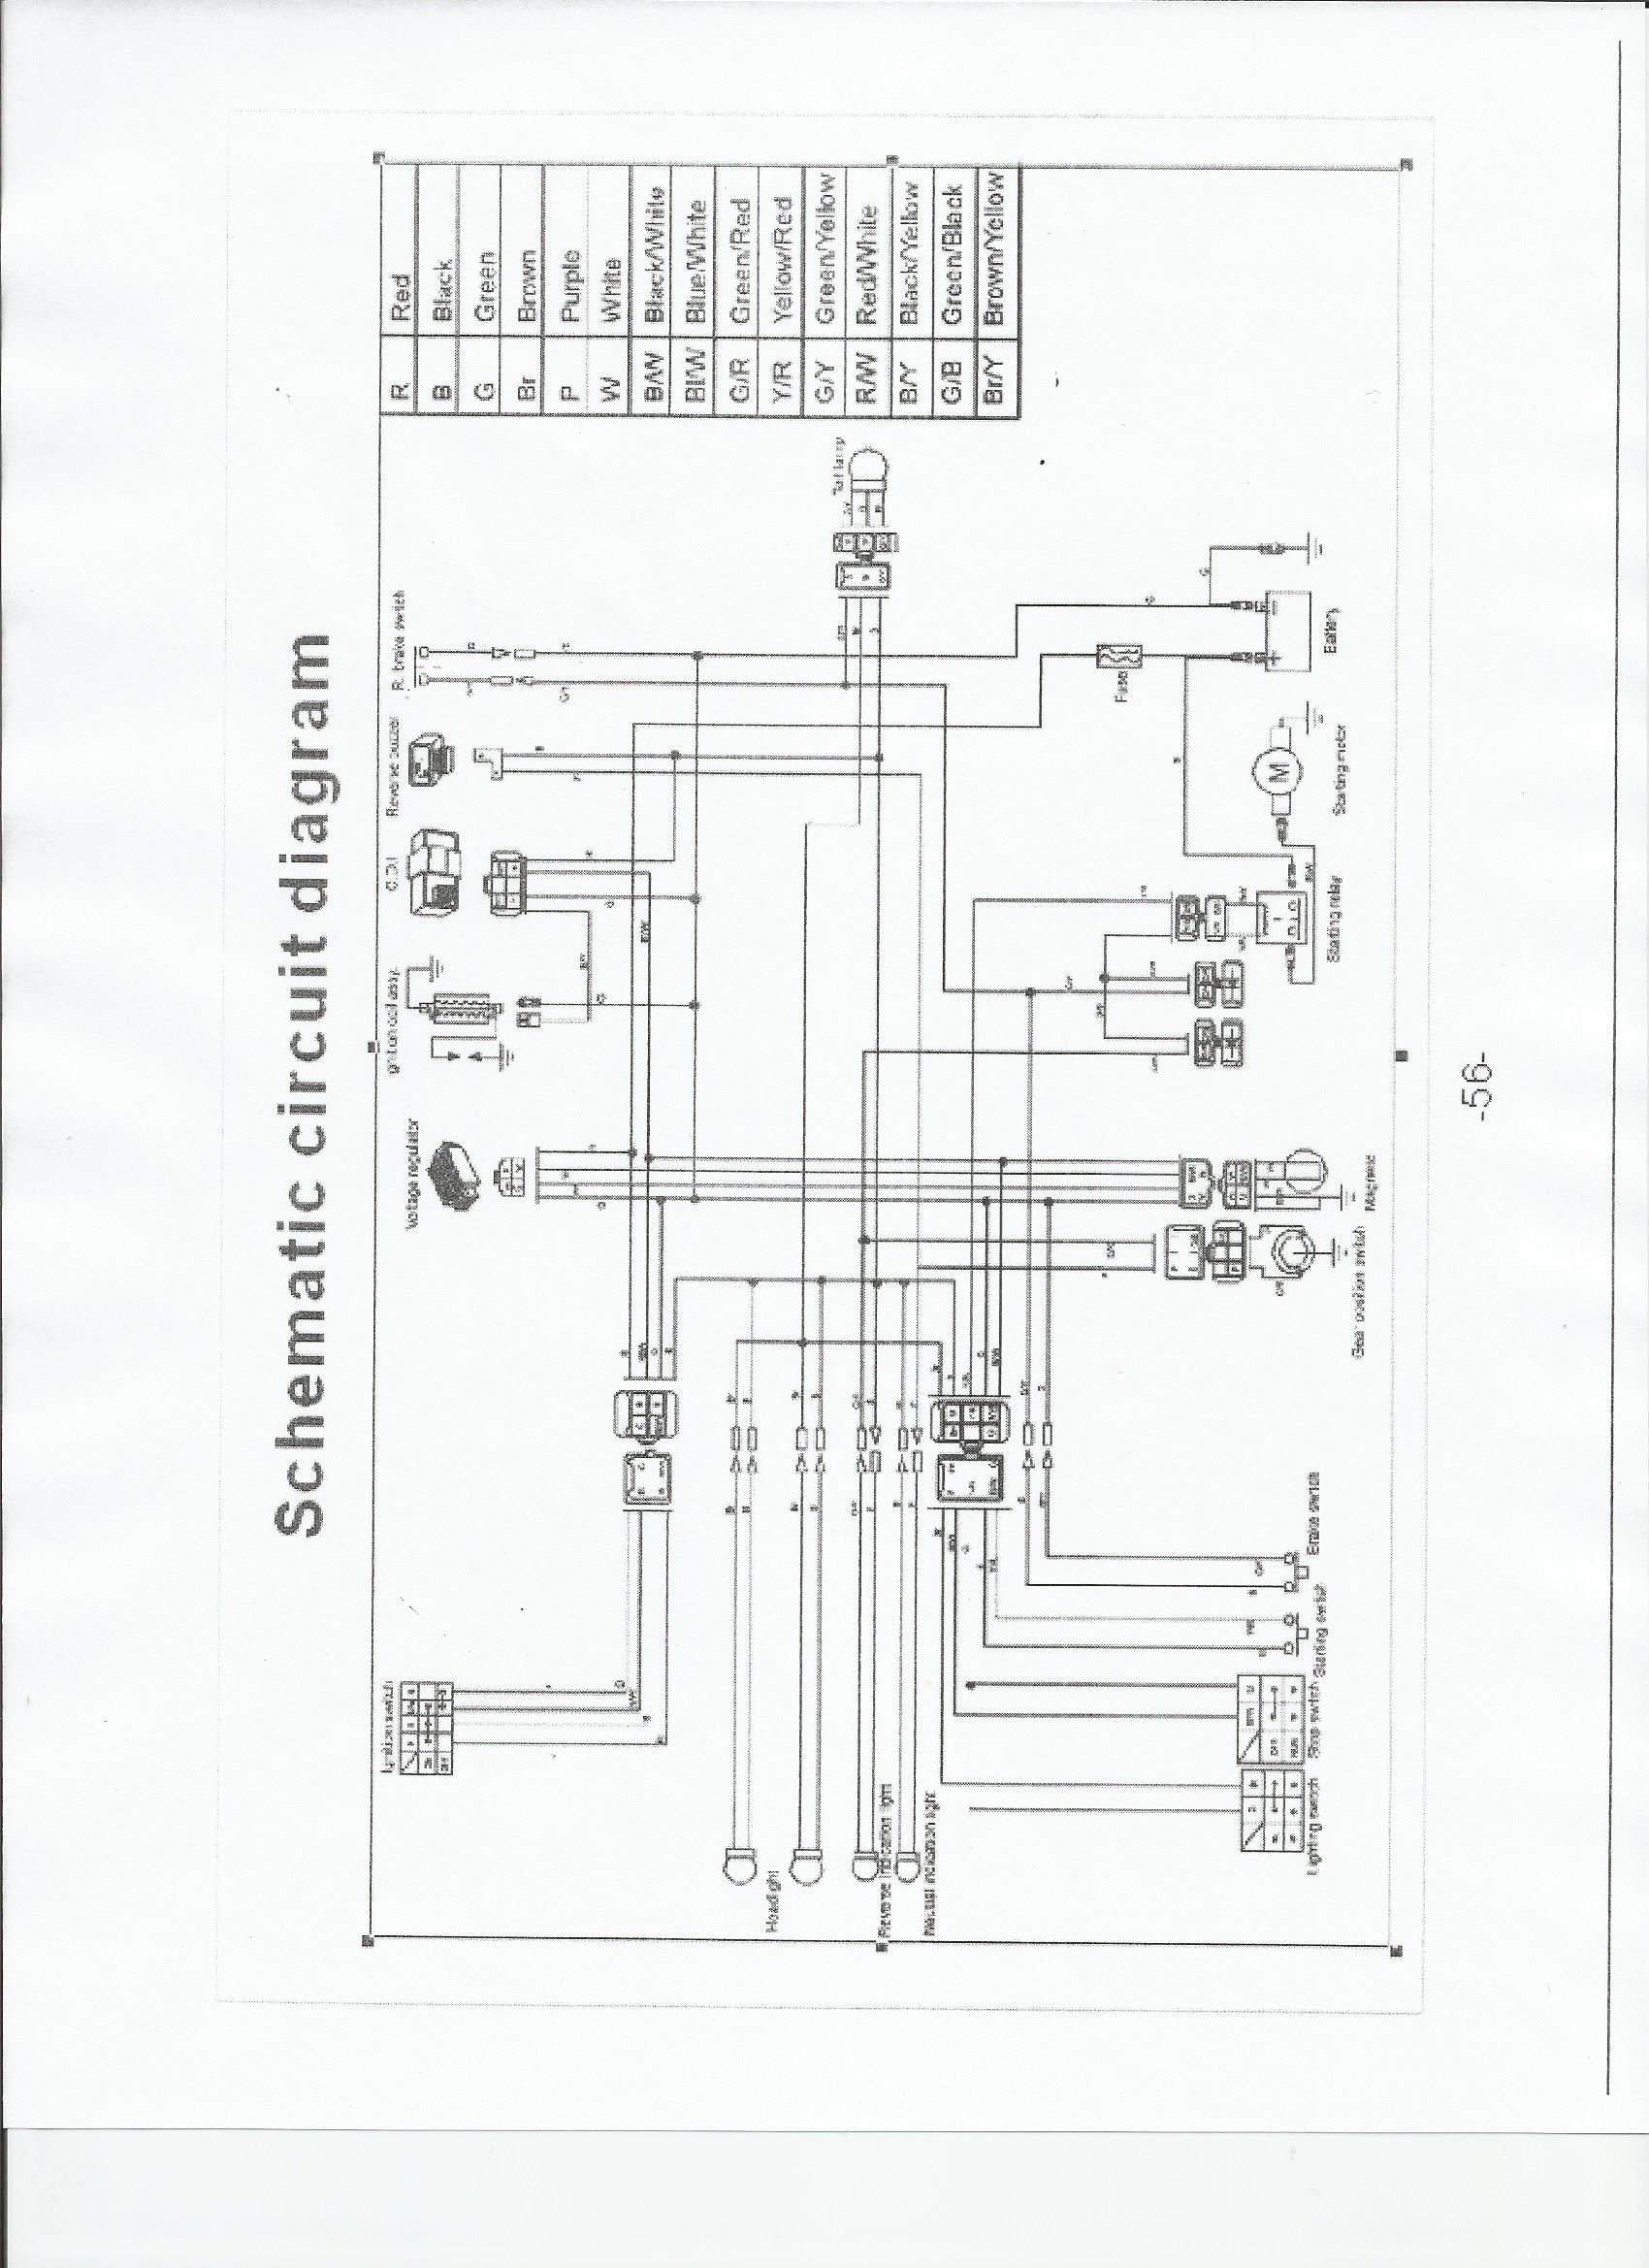 taotao mini and youth atv wiring schematic familygokarts support Tao Tao ATV Wiring Problems tao tao wiring schematic jpg